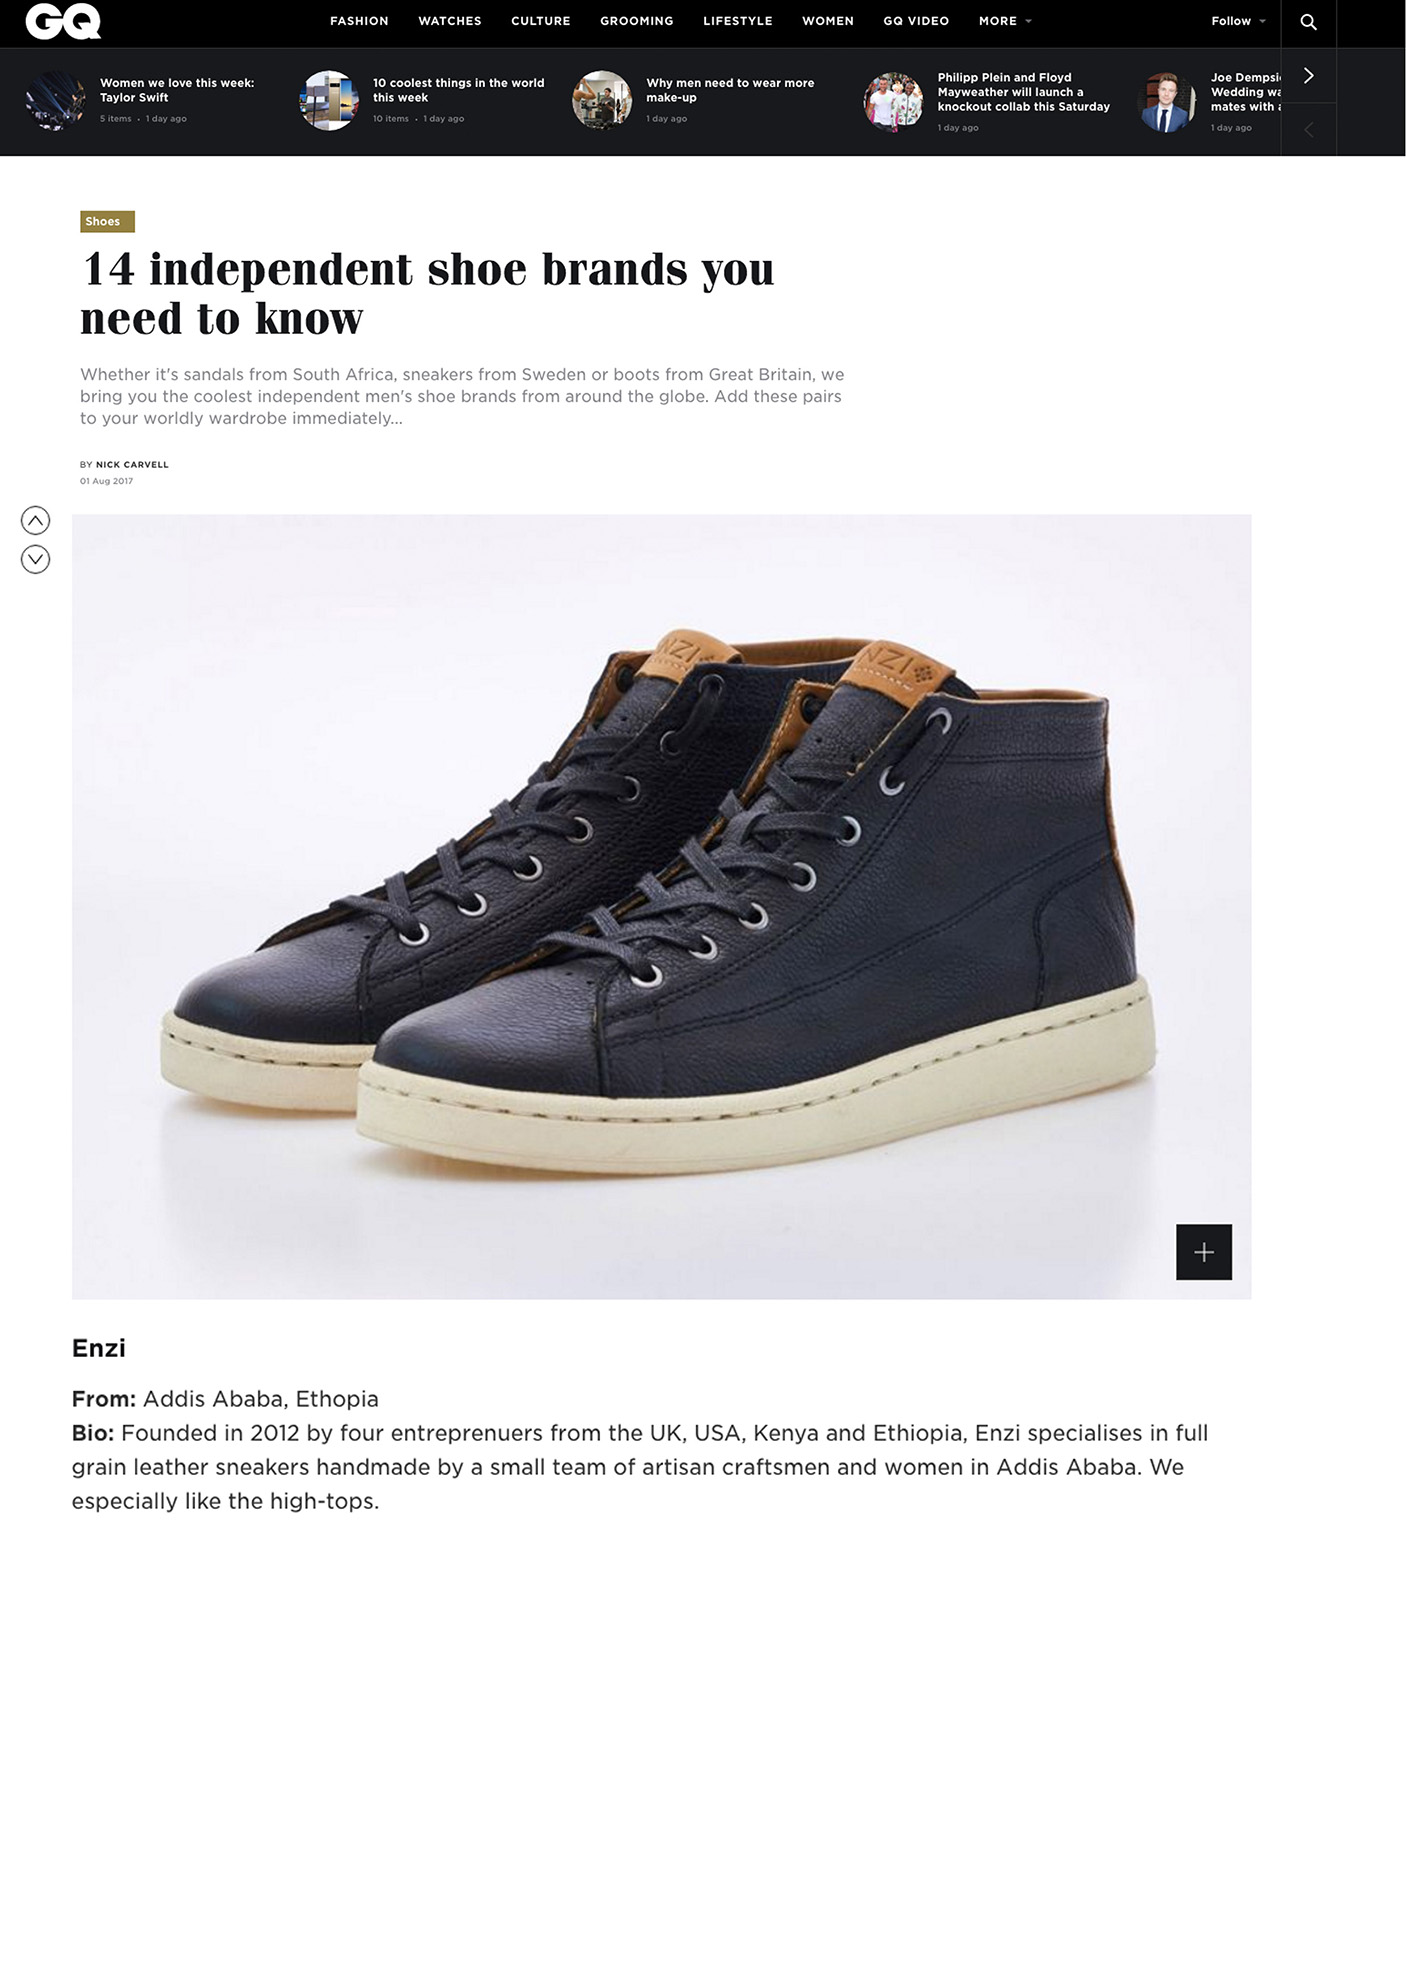 http://www.gq-magazine.co.uk/gallery/best-independent-shoe-brands-for-men